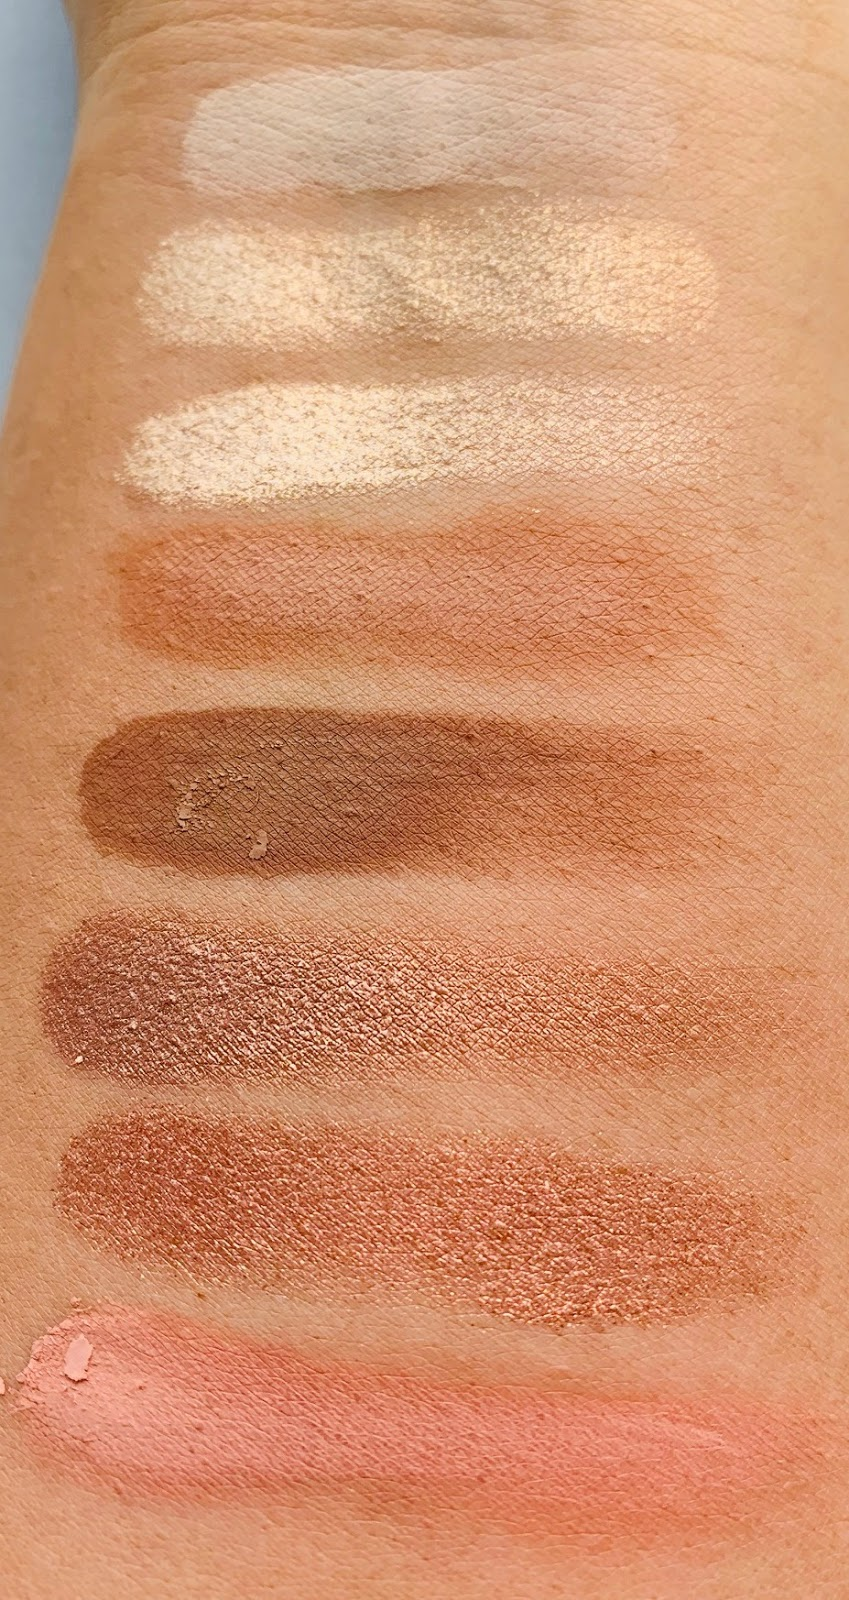 Too Faced The Natural Nudes Skin-Centric Eyeshadow Palette Review & Swatches